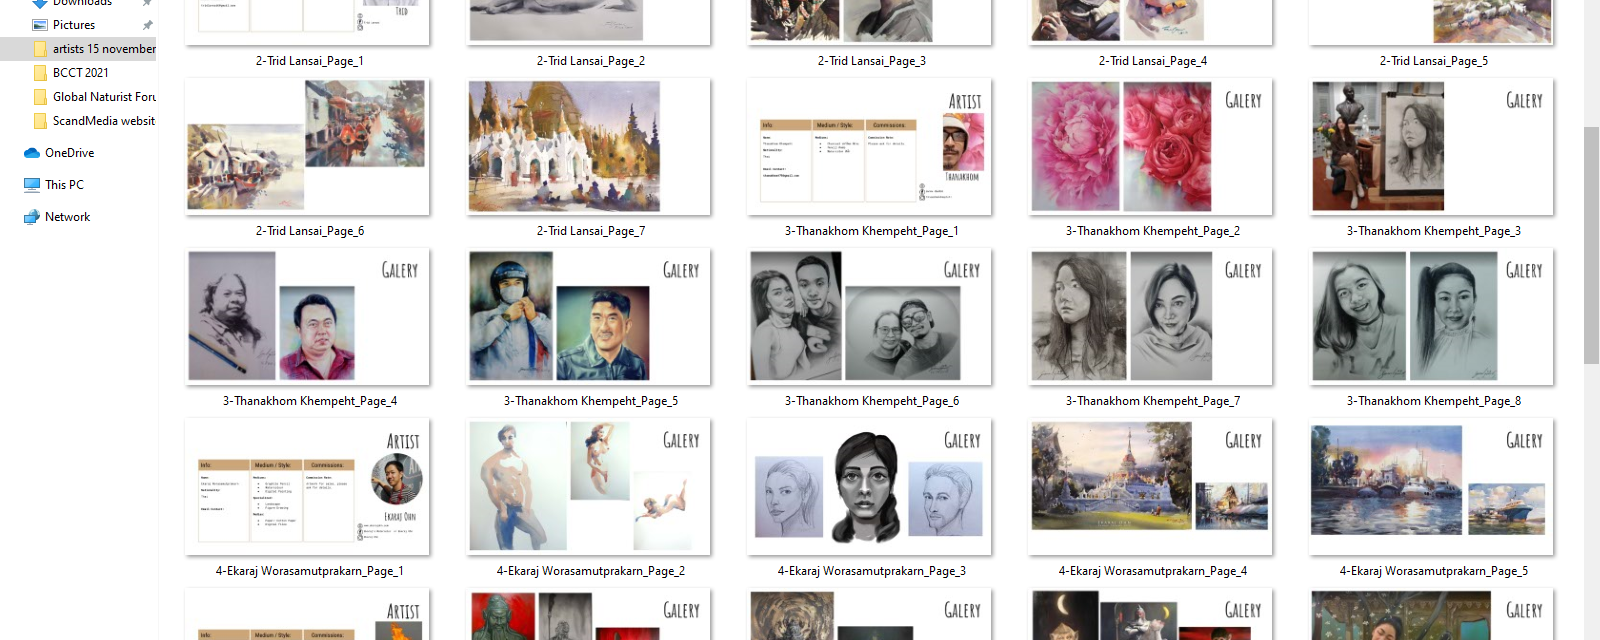 Impressive line-up of artists for Barefeet nude drawing event